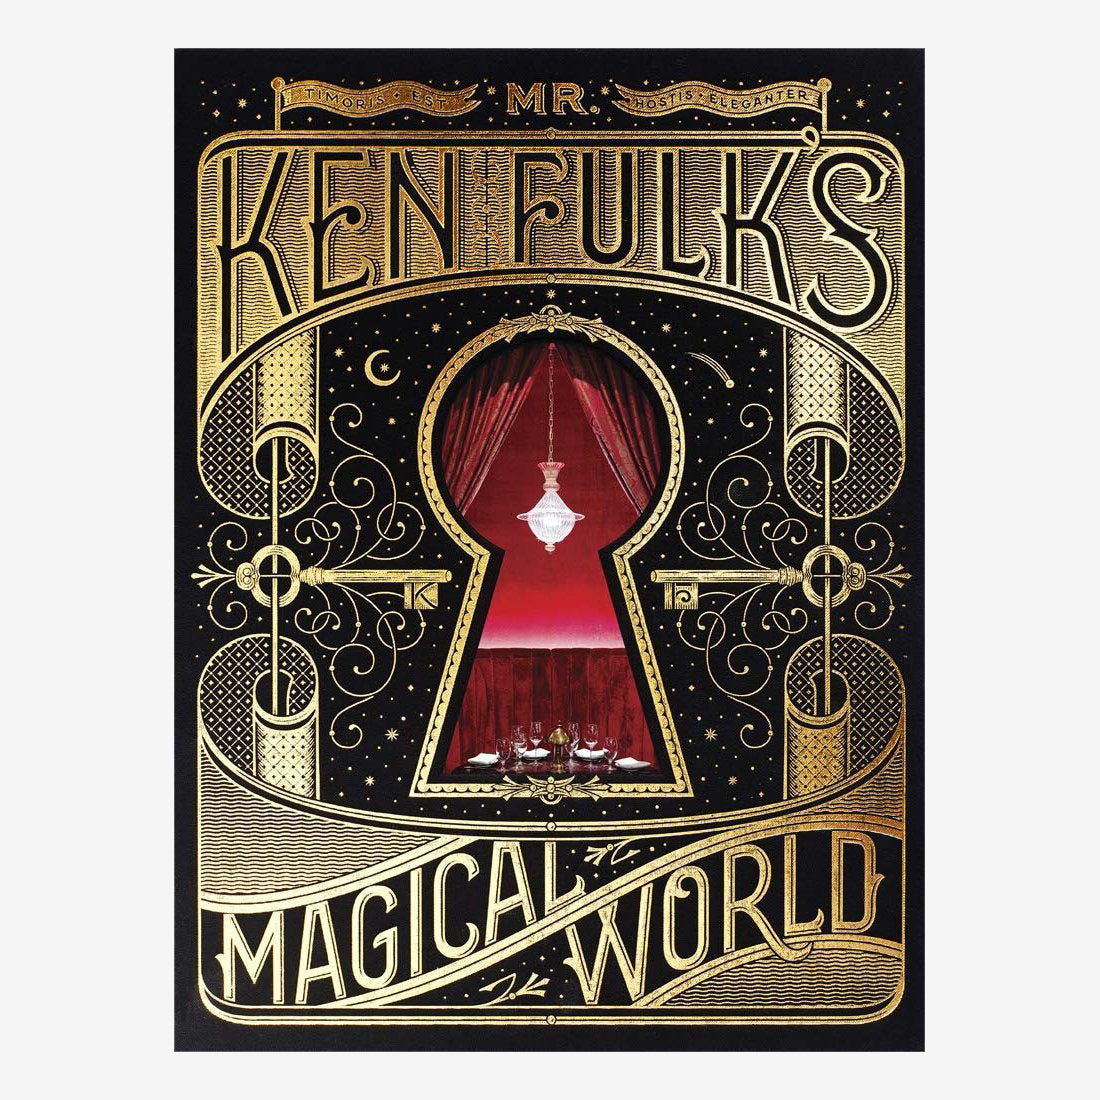 Ken Fulk's Magical World